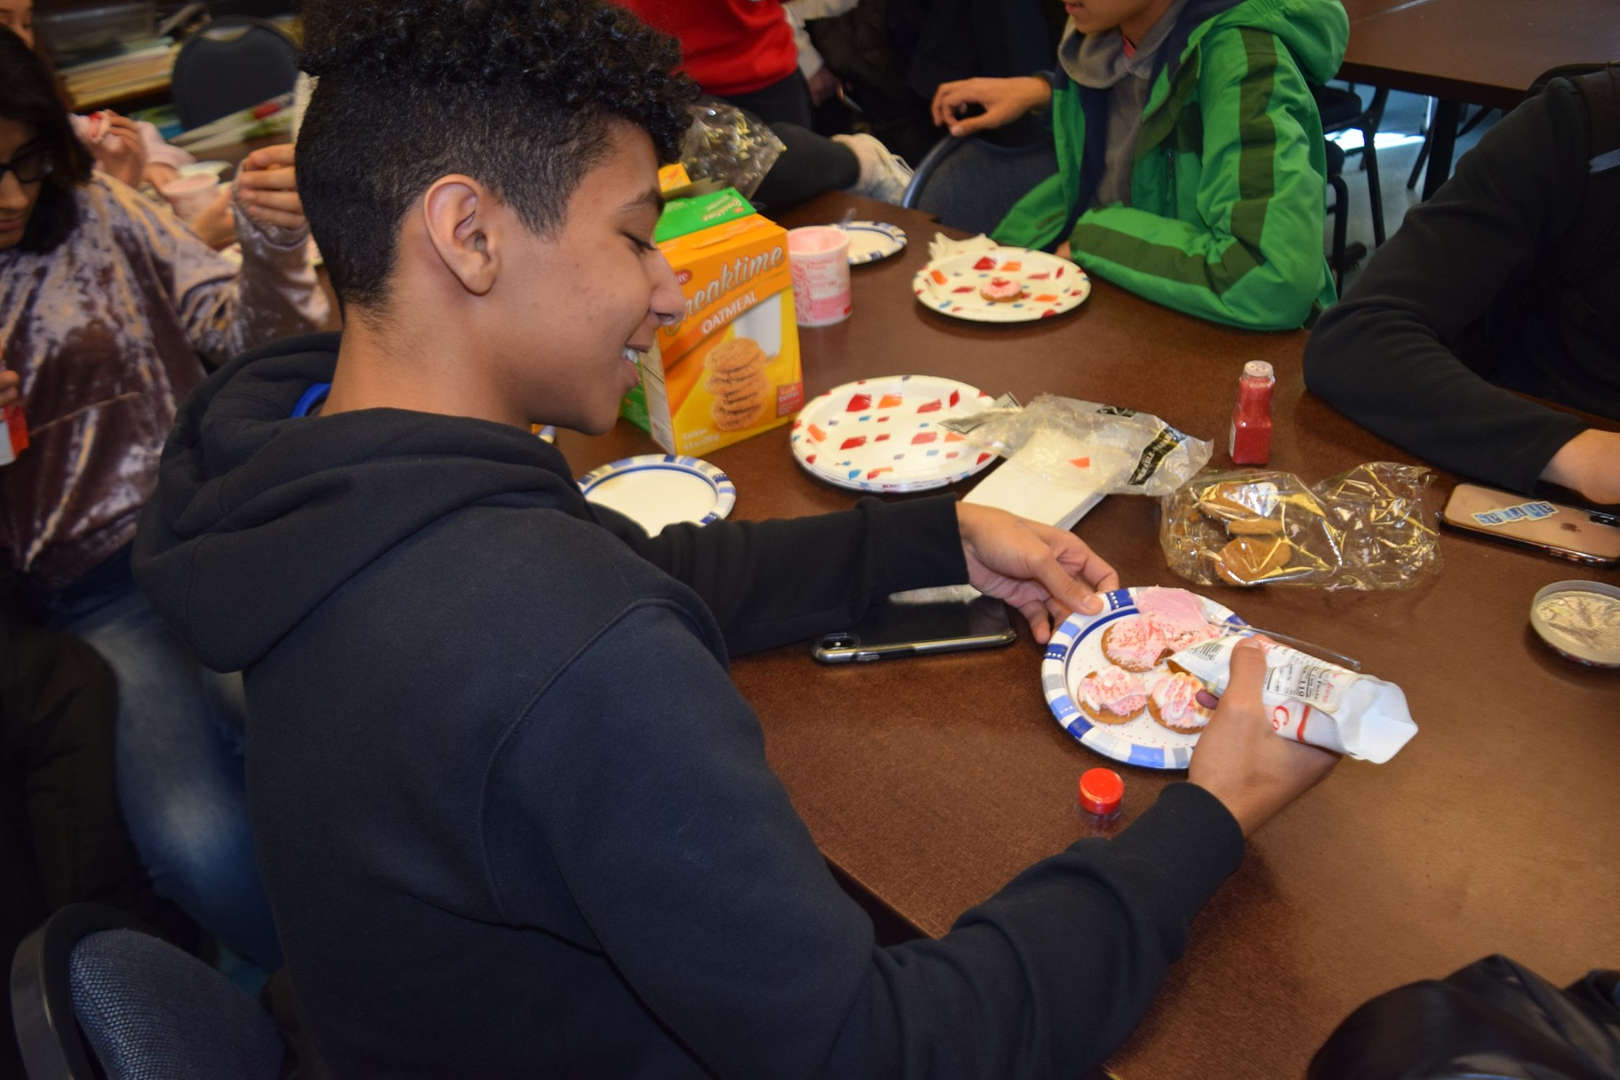 Academy students decorate and eat cookies together for No One Eats Alone Day